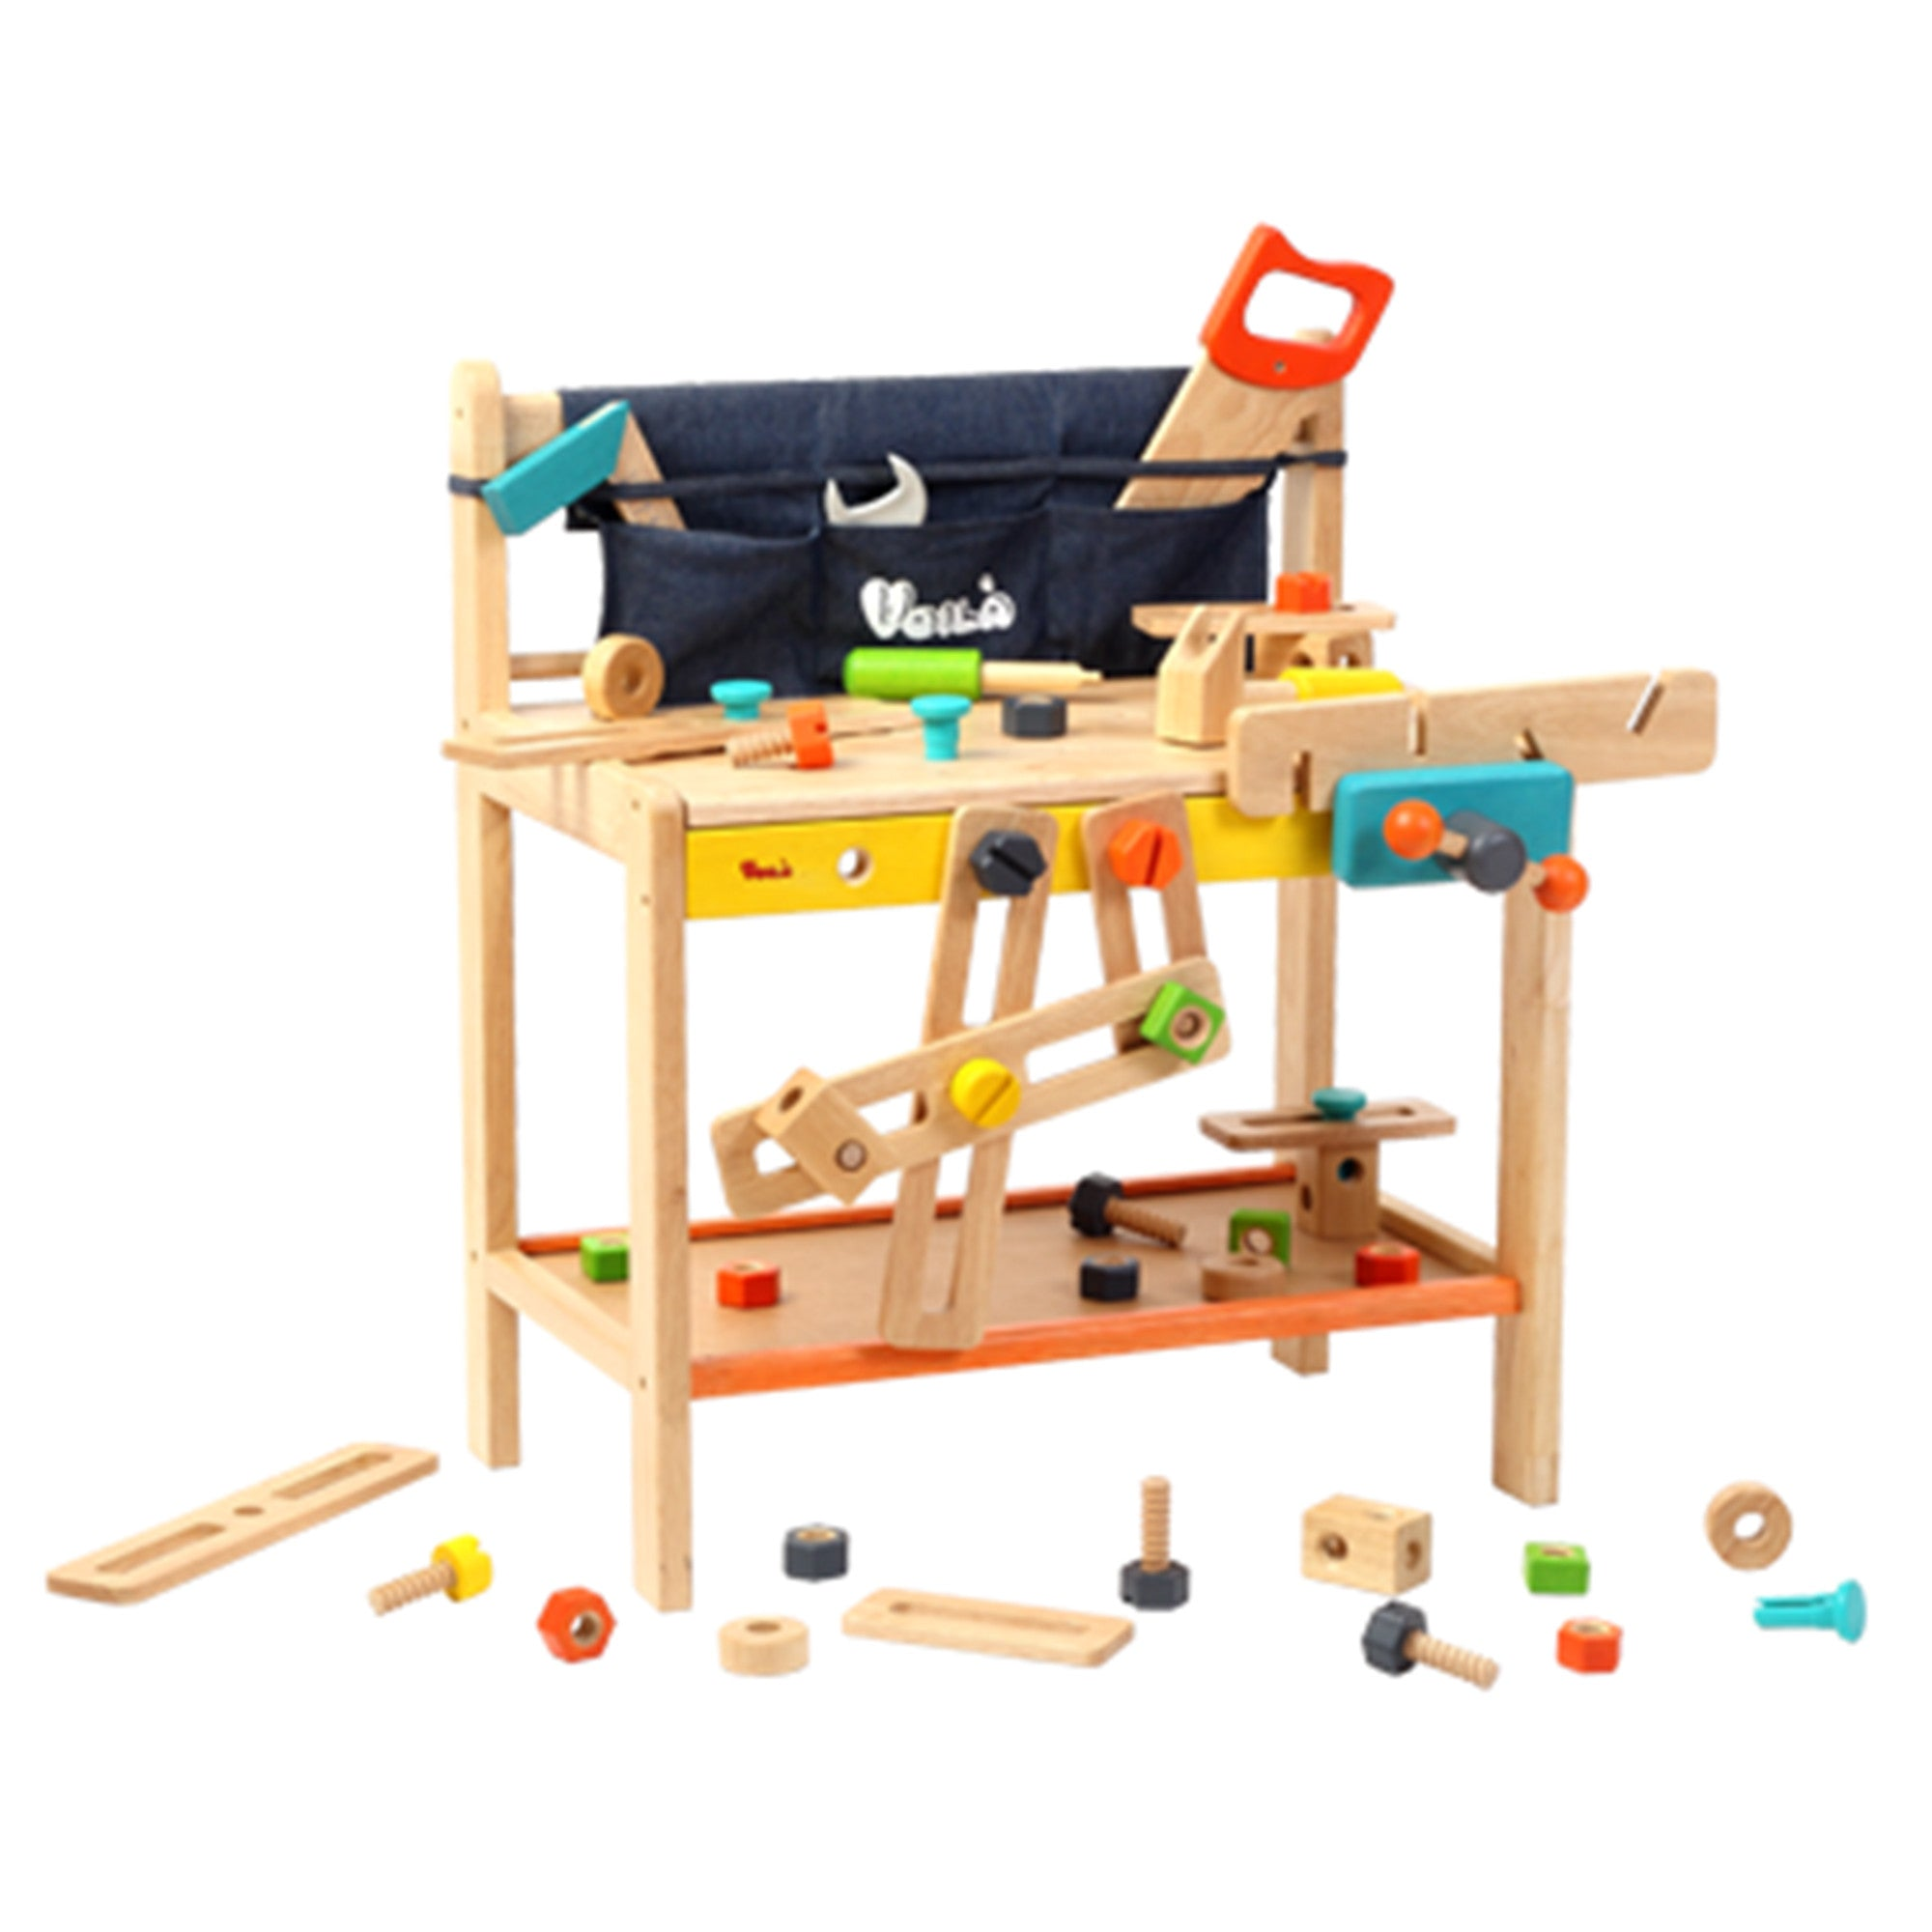 Wooden Toy Workbench set   - Voila - Little Earth Nest - 1